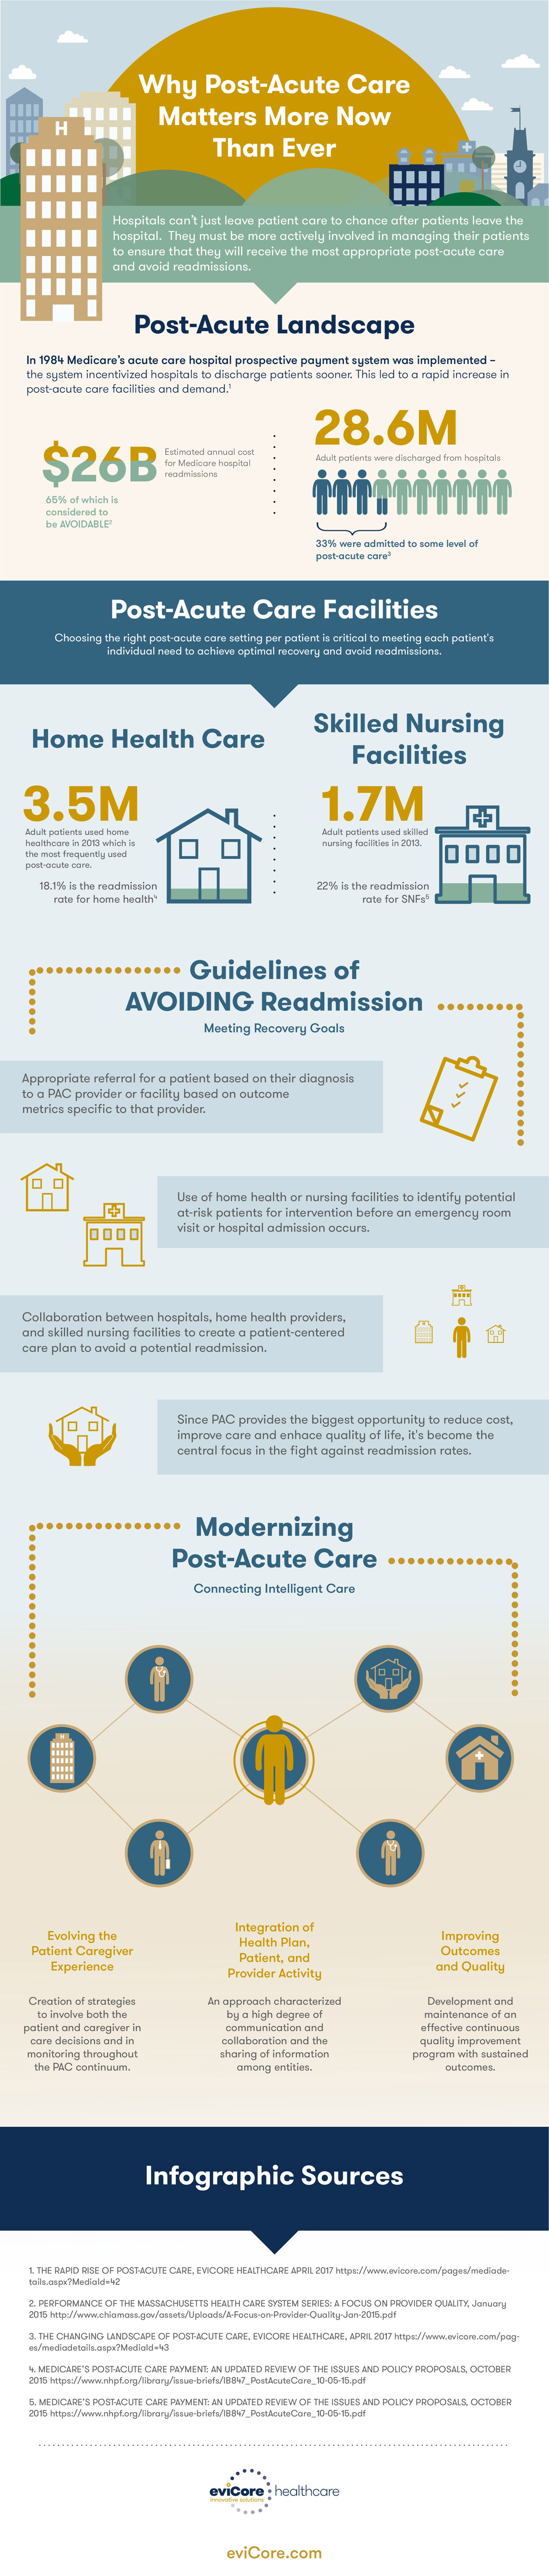 Post-Acute Care: Why it Matters More Today, and How It's Empowered by Health Care Technology - Infographic